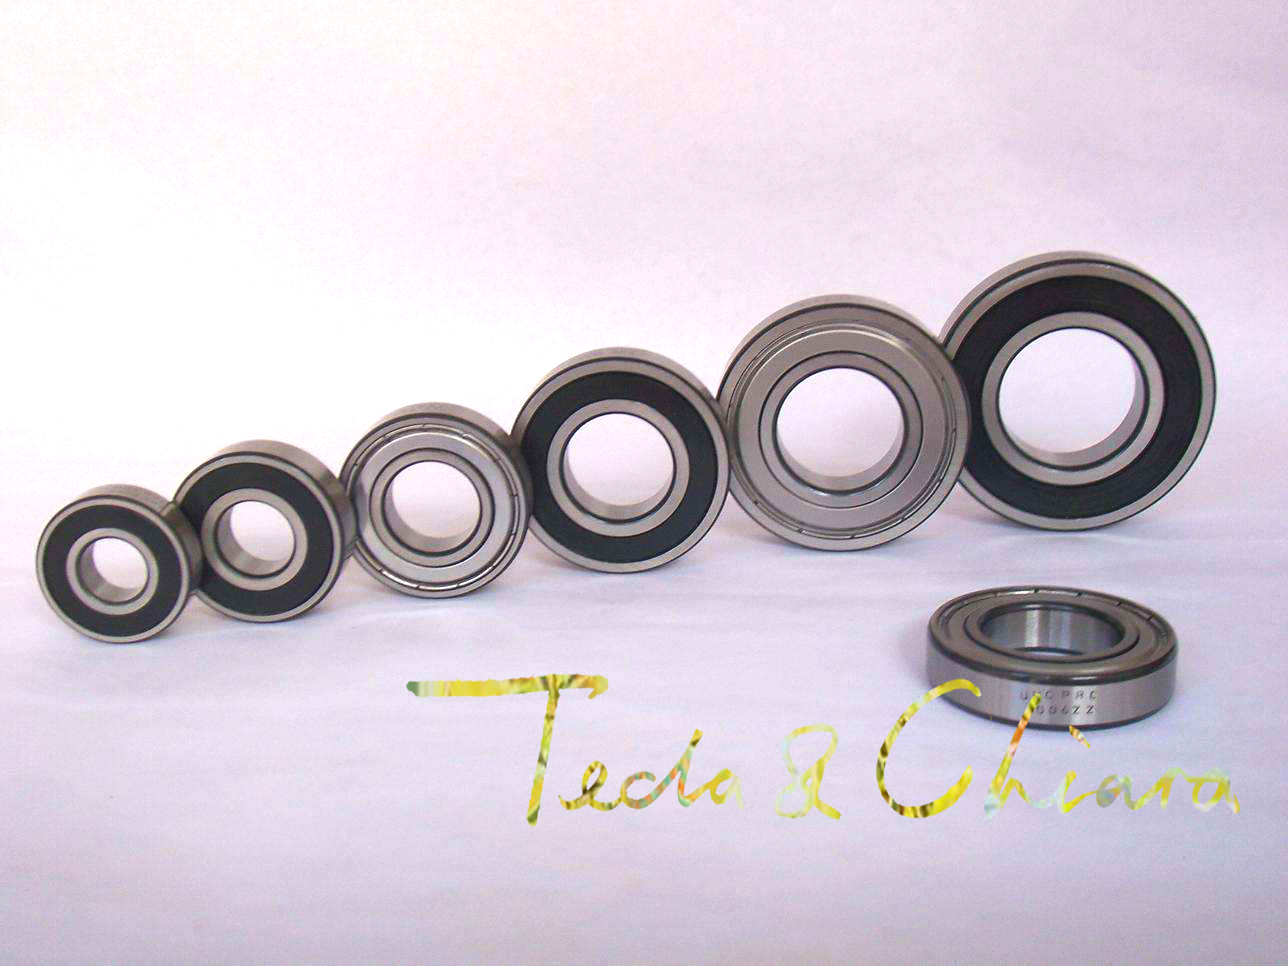 608 608ZZ 608RS 608-2Z 608Z 608-2RS ZZ RS RZ 2RZ AEBC-5 Deep Groove Ball Bearings 8 x 22 x 7mm High Quality 10pcs high quality abec 5 608 2rs 608rs 608 2rs 608 rs 8 22 7 mm miniature rubber seal skateboard deep groove ball bearings